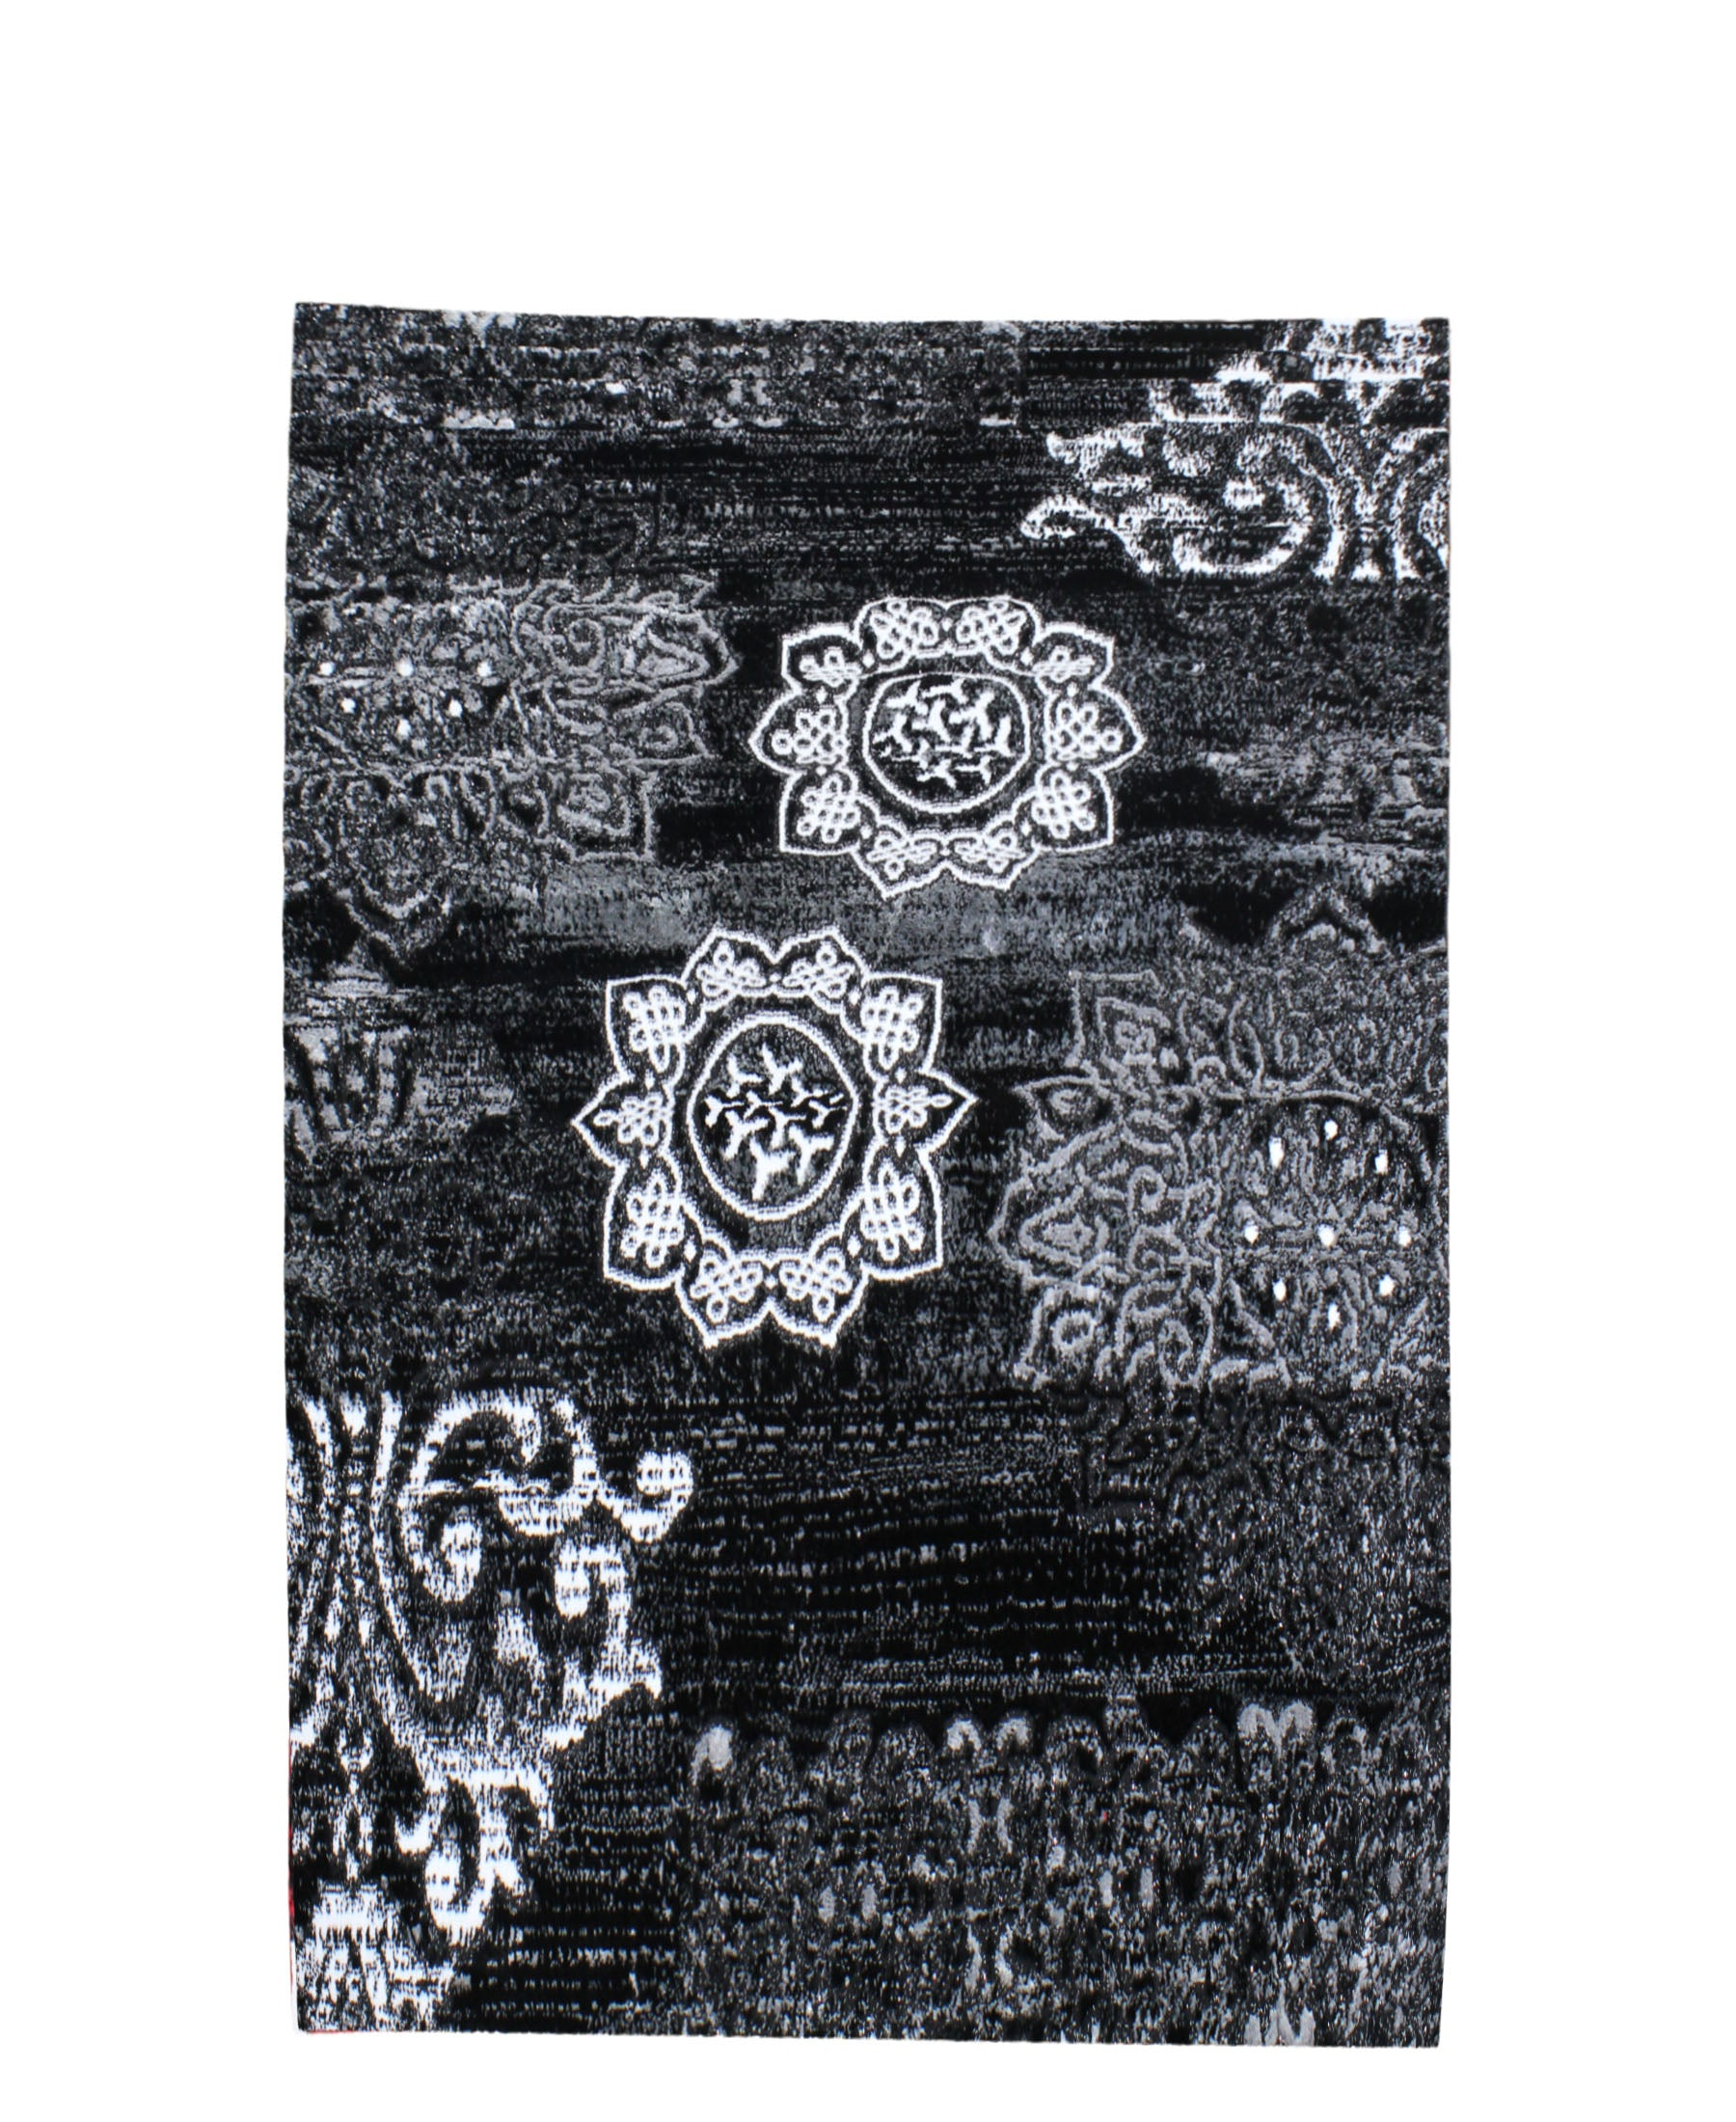 Izmir Ancient Mural Carpet 1500mm x 2000mm - Black